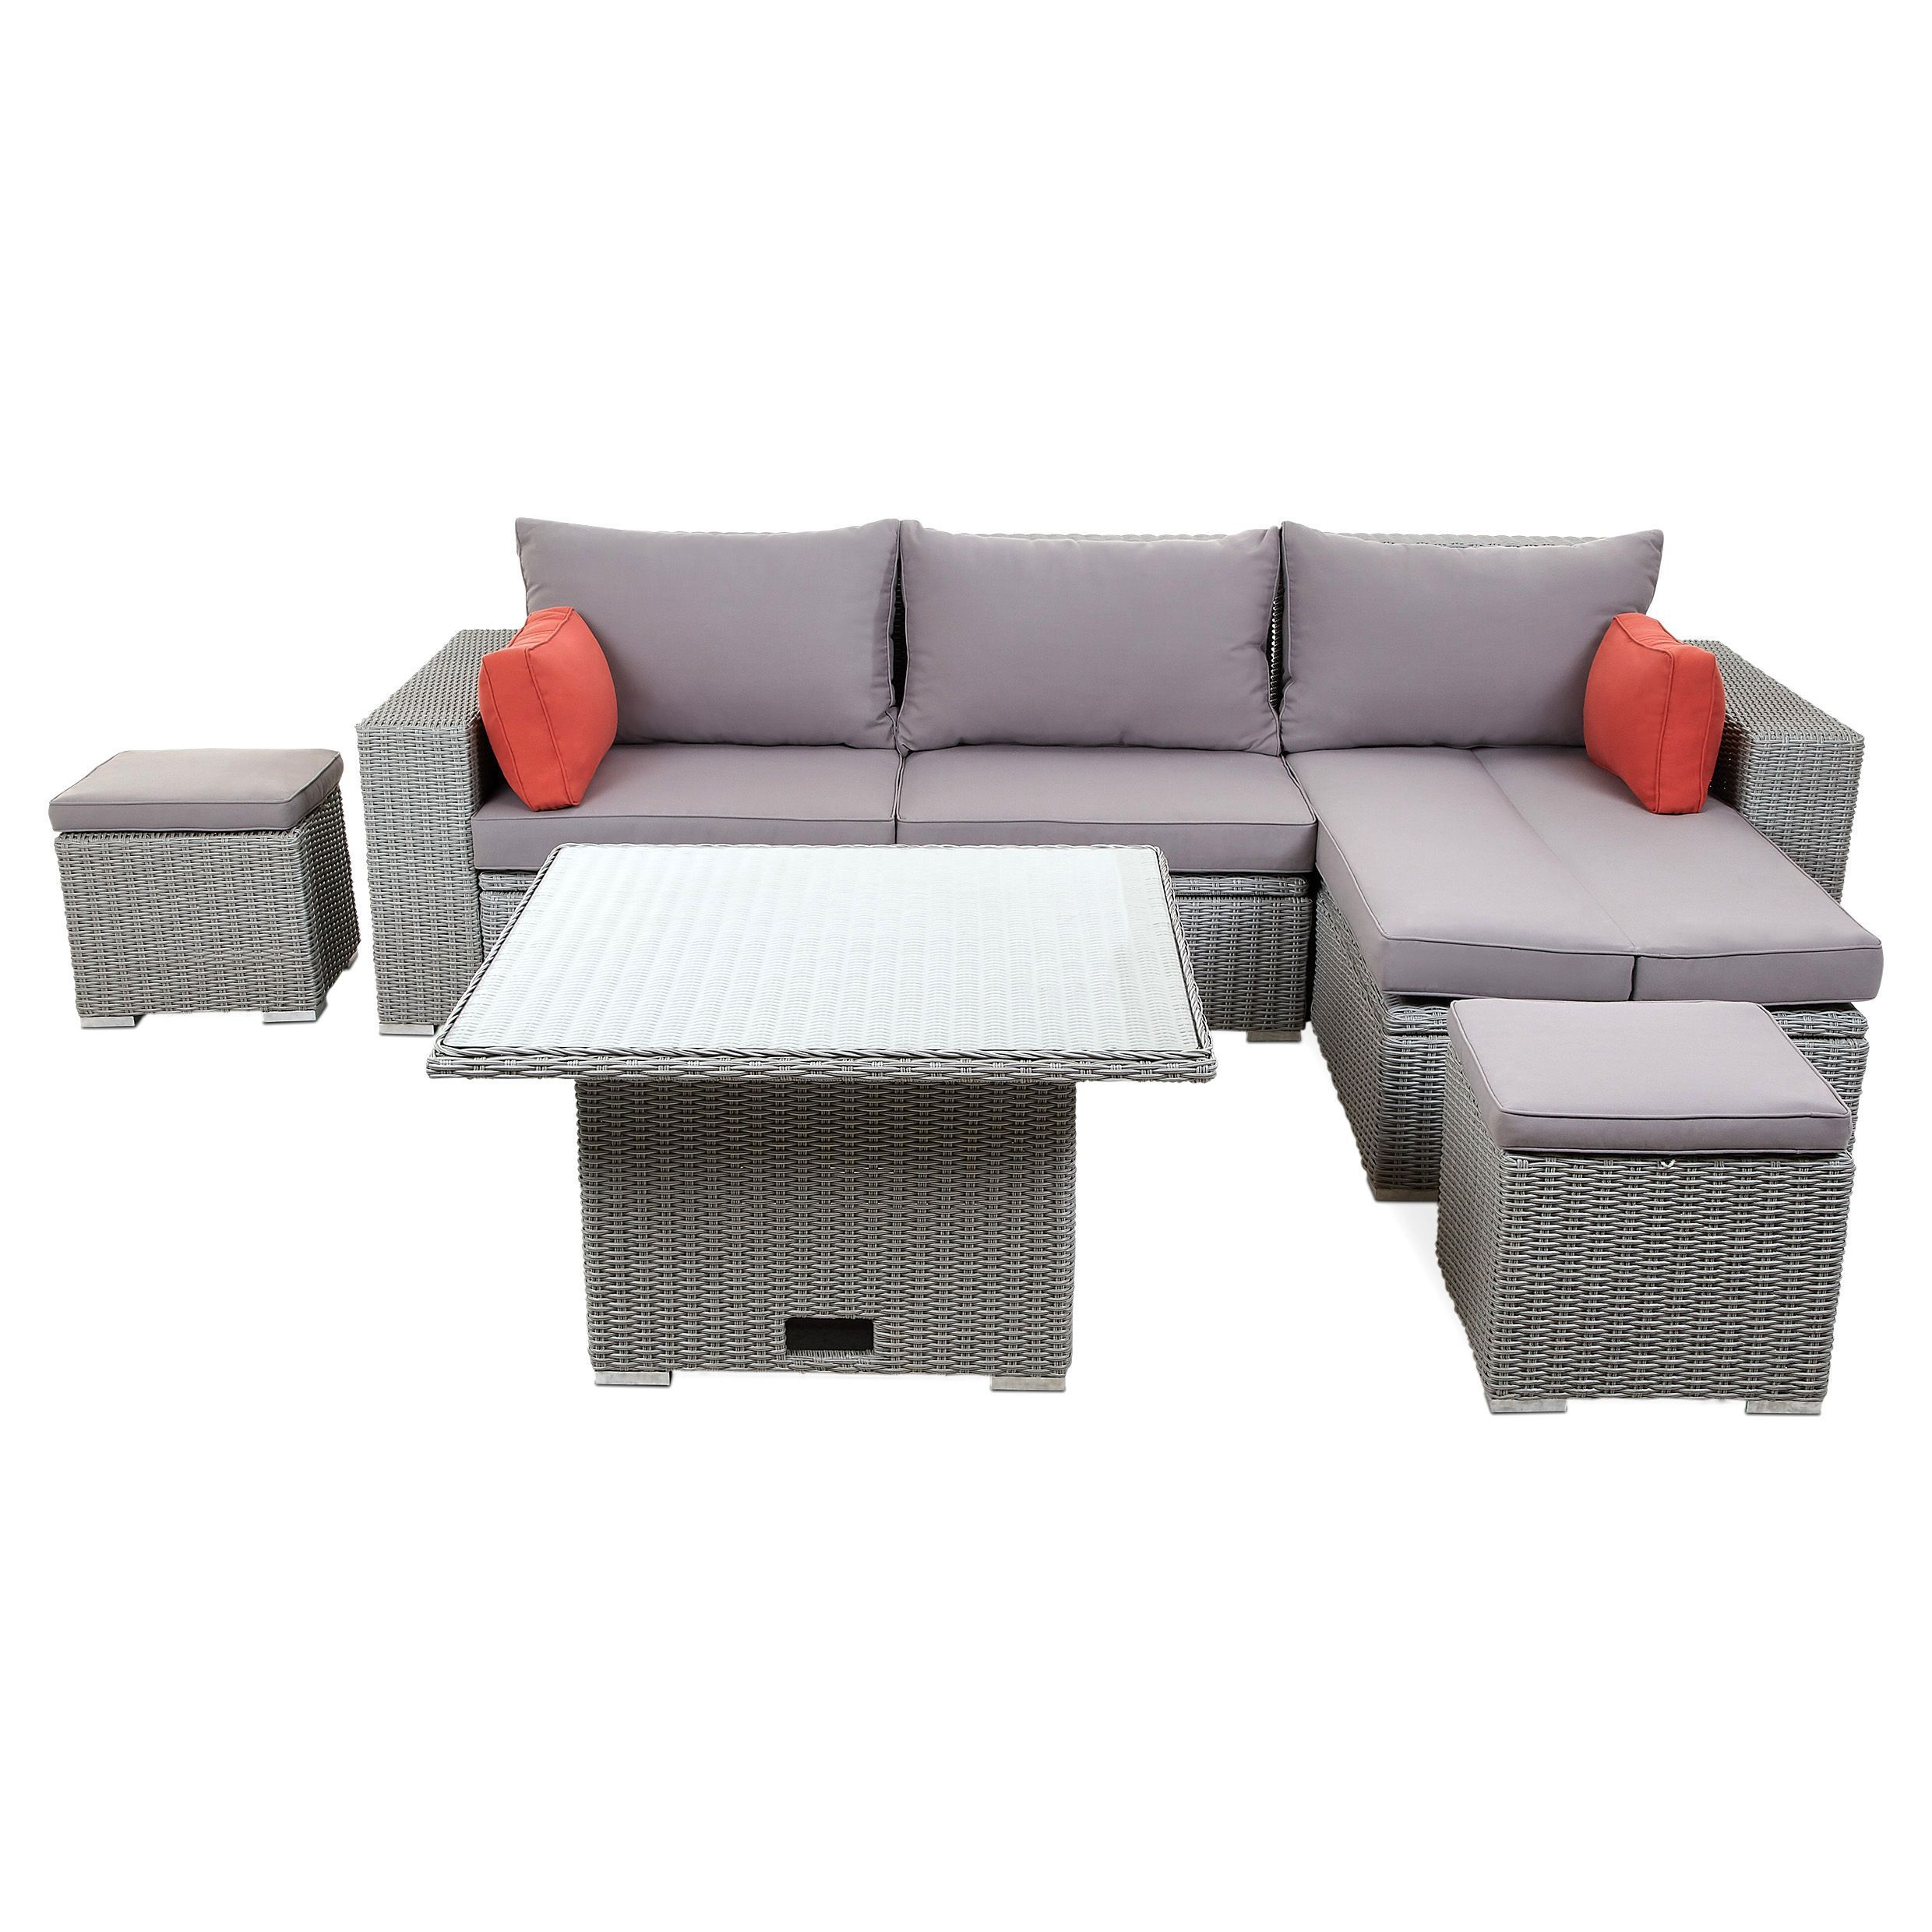 Gabbs 8 Seater Sofa Set - B&Q for all your home and garden